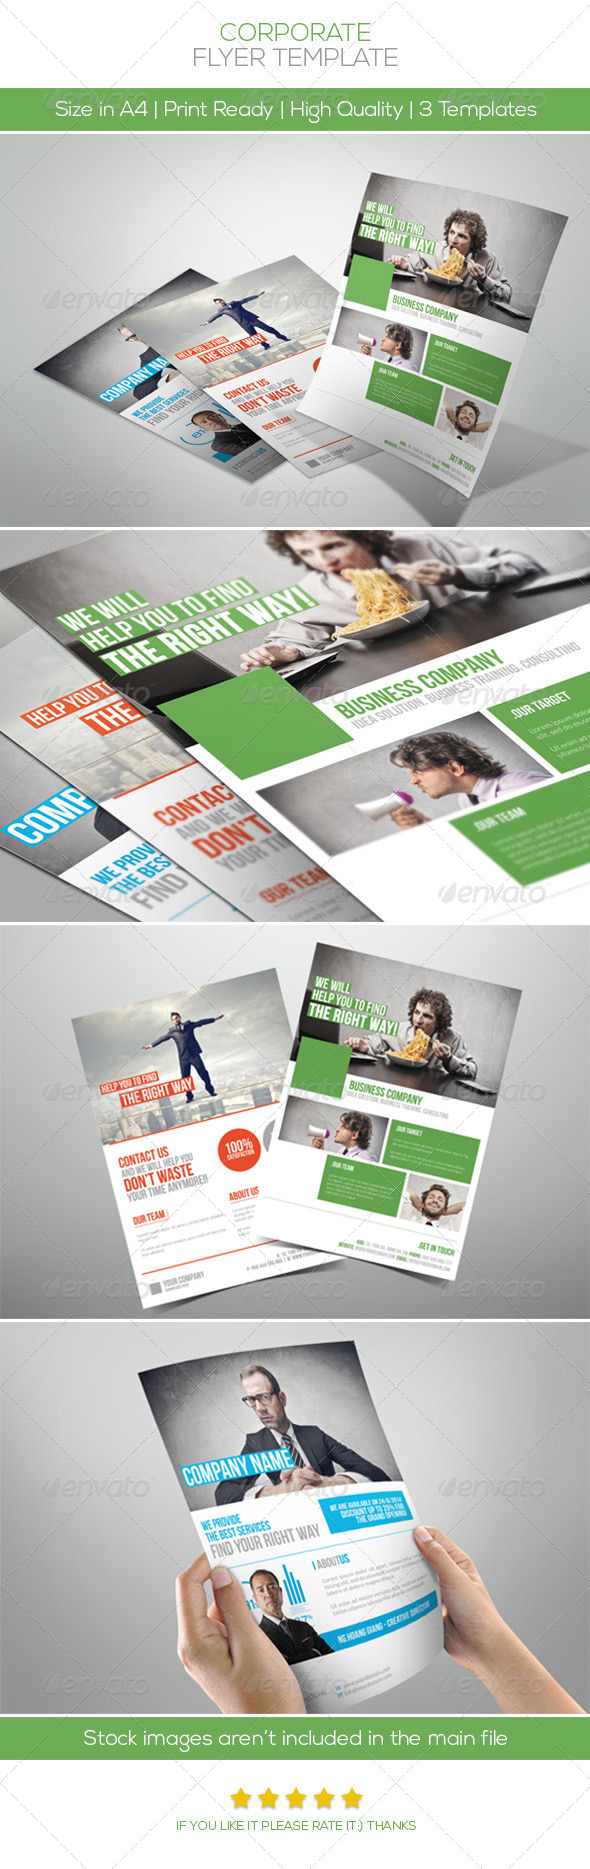 GraphicRiver Premium Corporate Flyers Vol.3 5038640